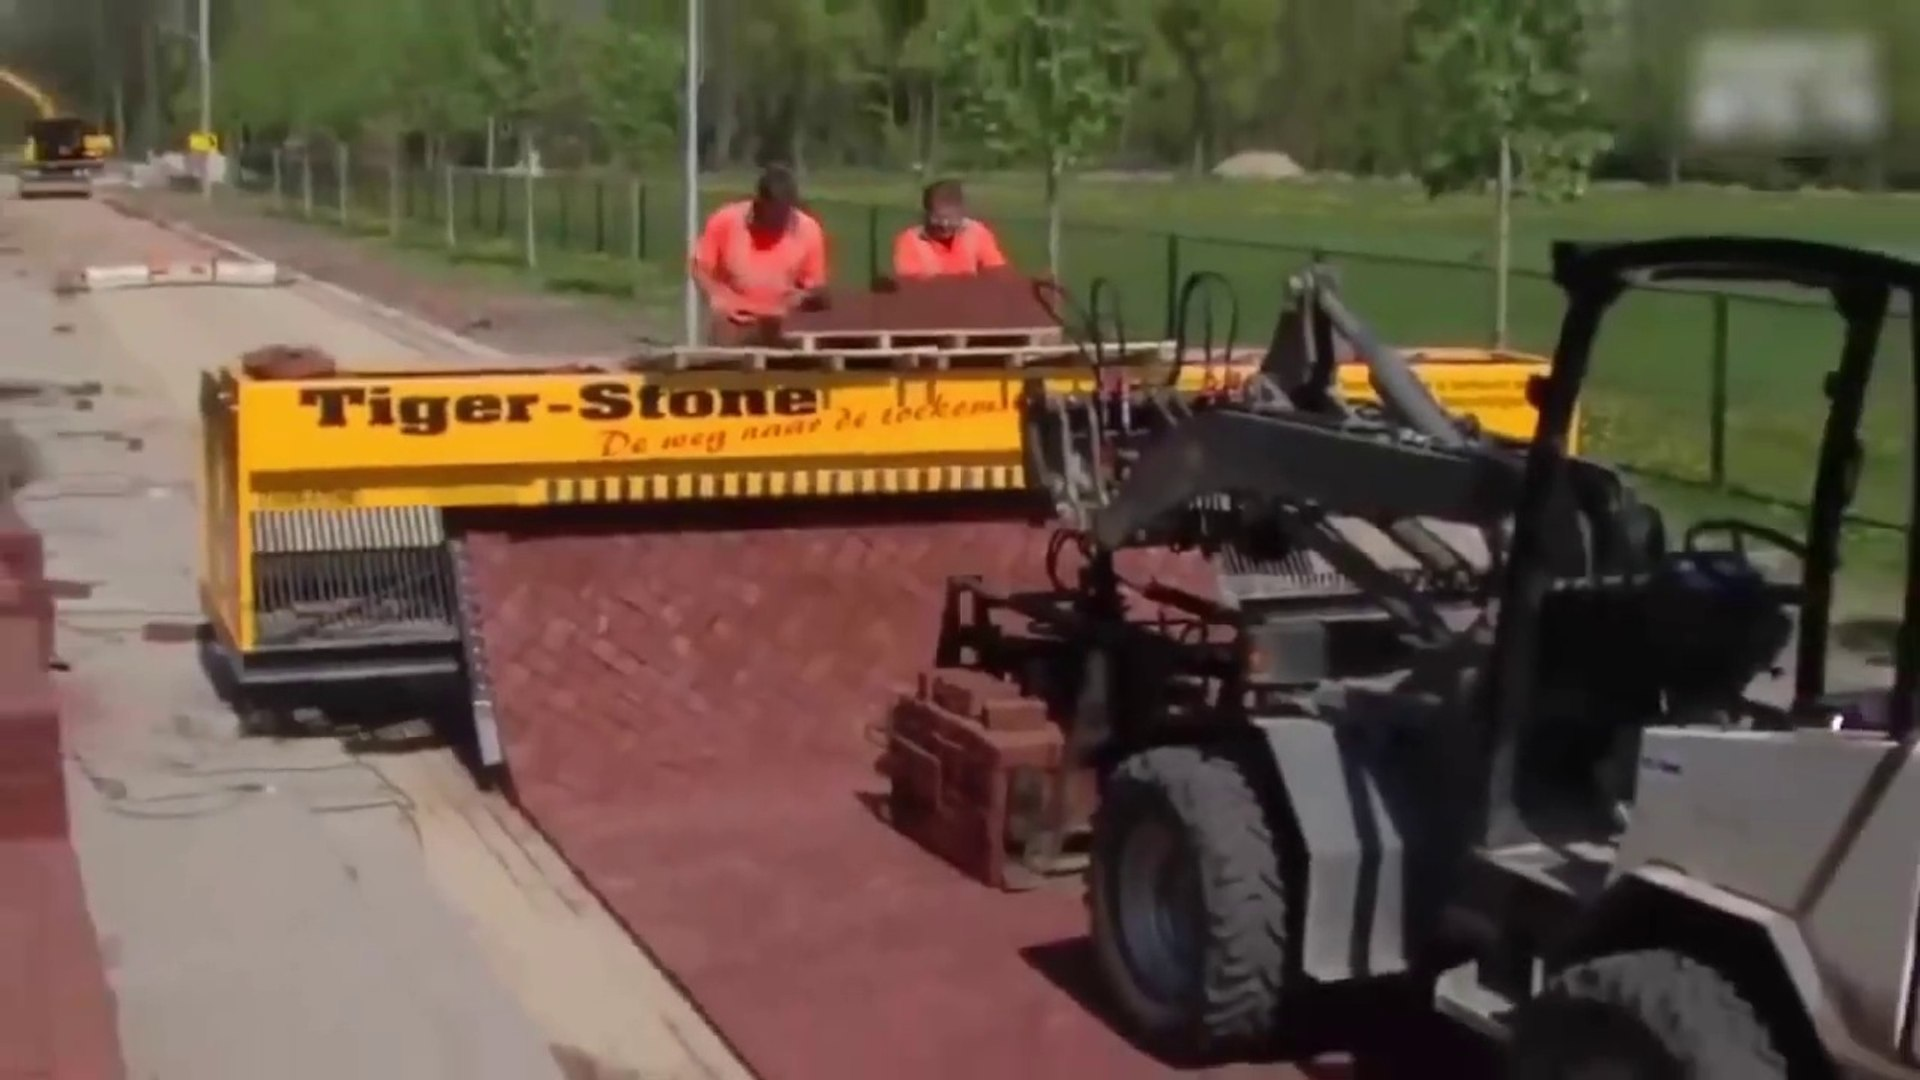 Latest Technology 2017 Road Printer Capable of Laying Bricks Perfectly on The Ground-s6Q2P3H4